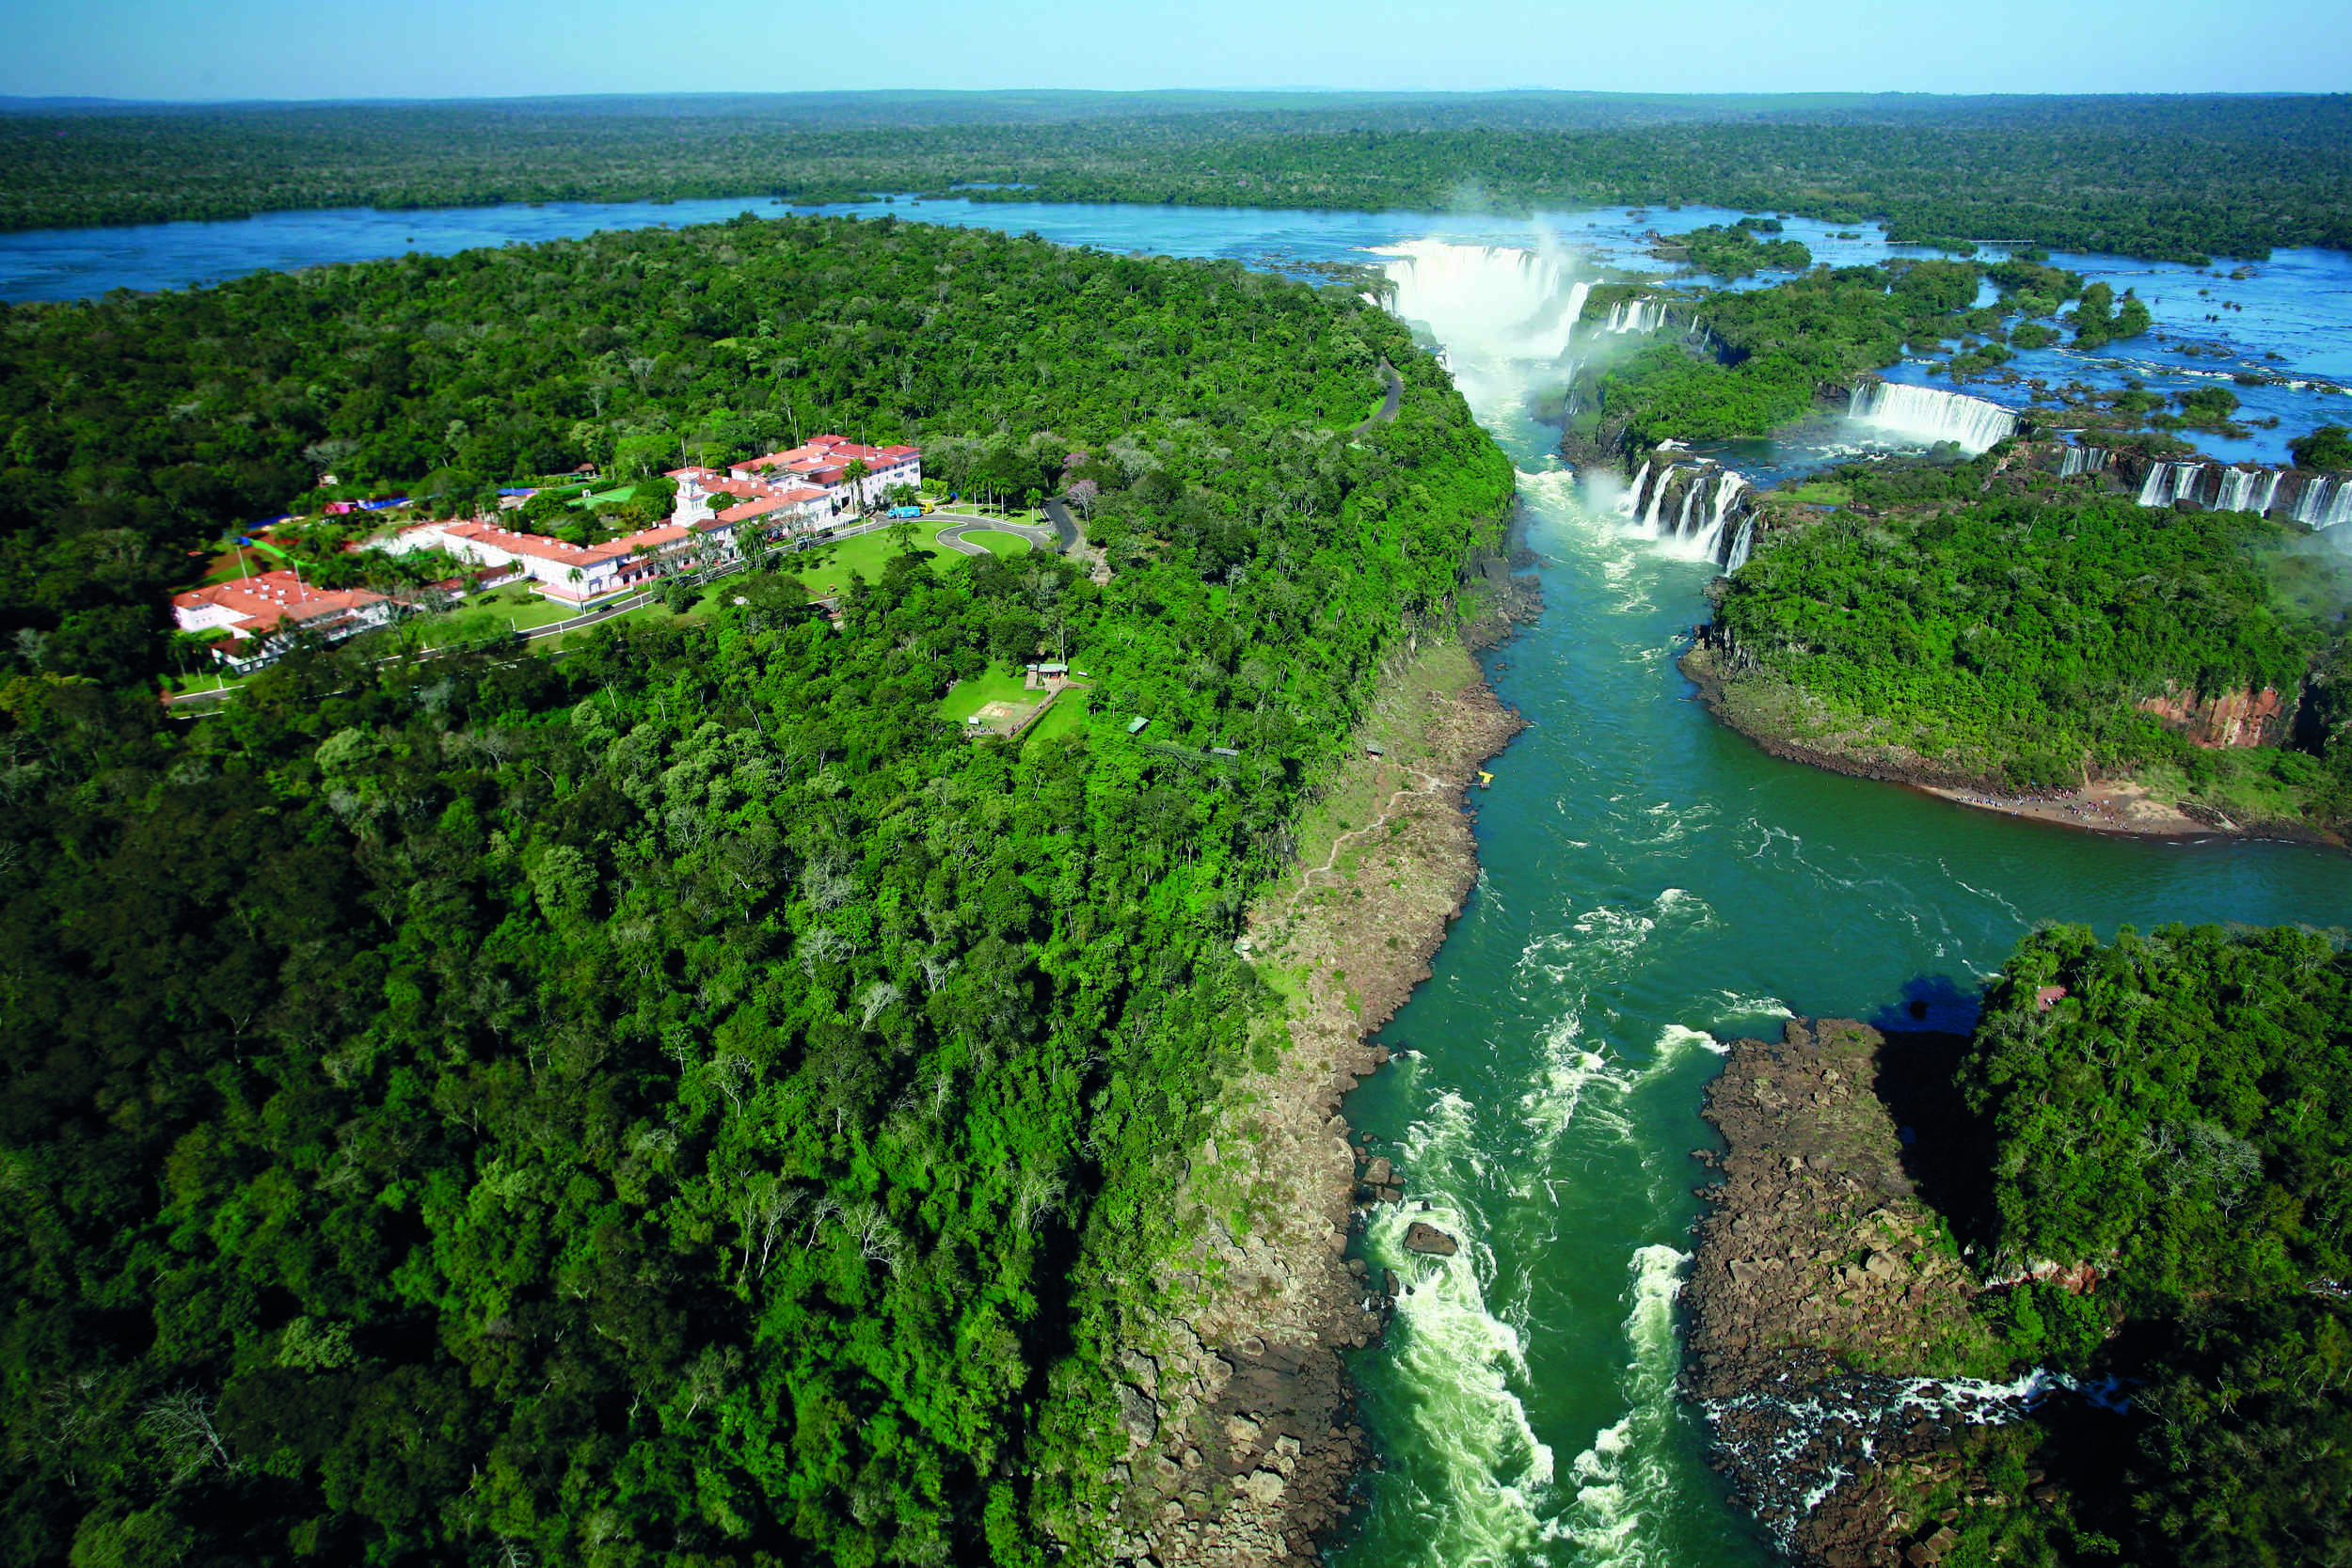 (2) Perfectly positioned inside Iguaçu National Park, Hotel das Cataratas is a five-star luxury resort with breathtaking views of the waterfalls. copy.jpg